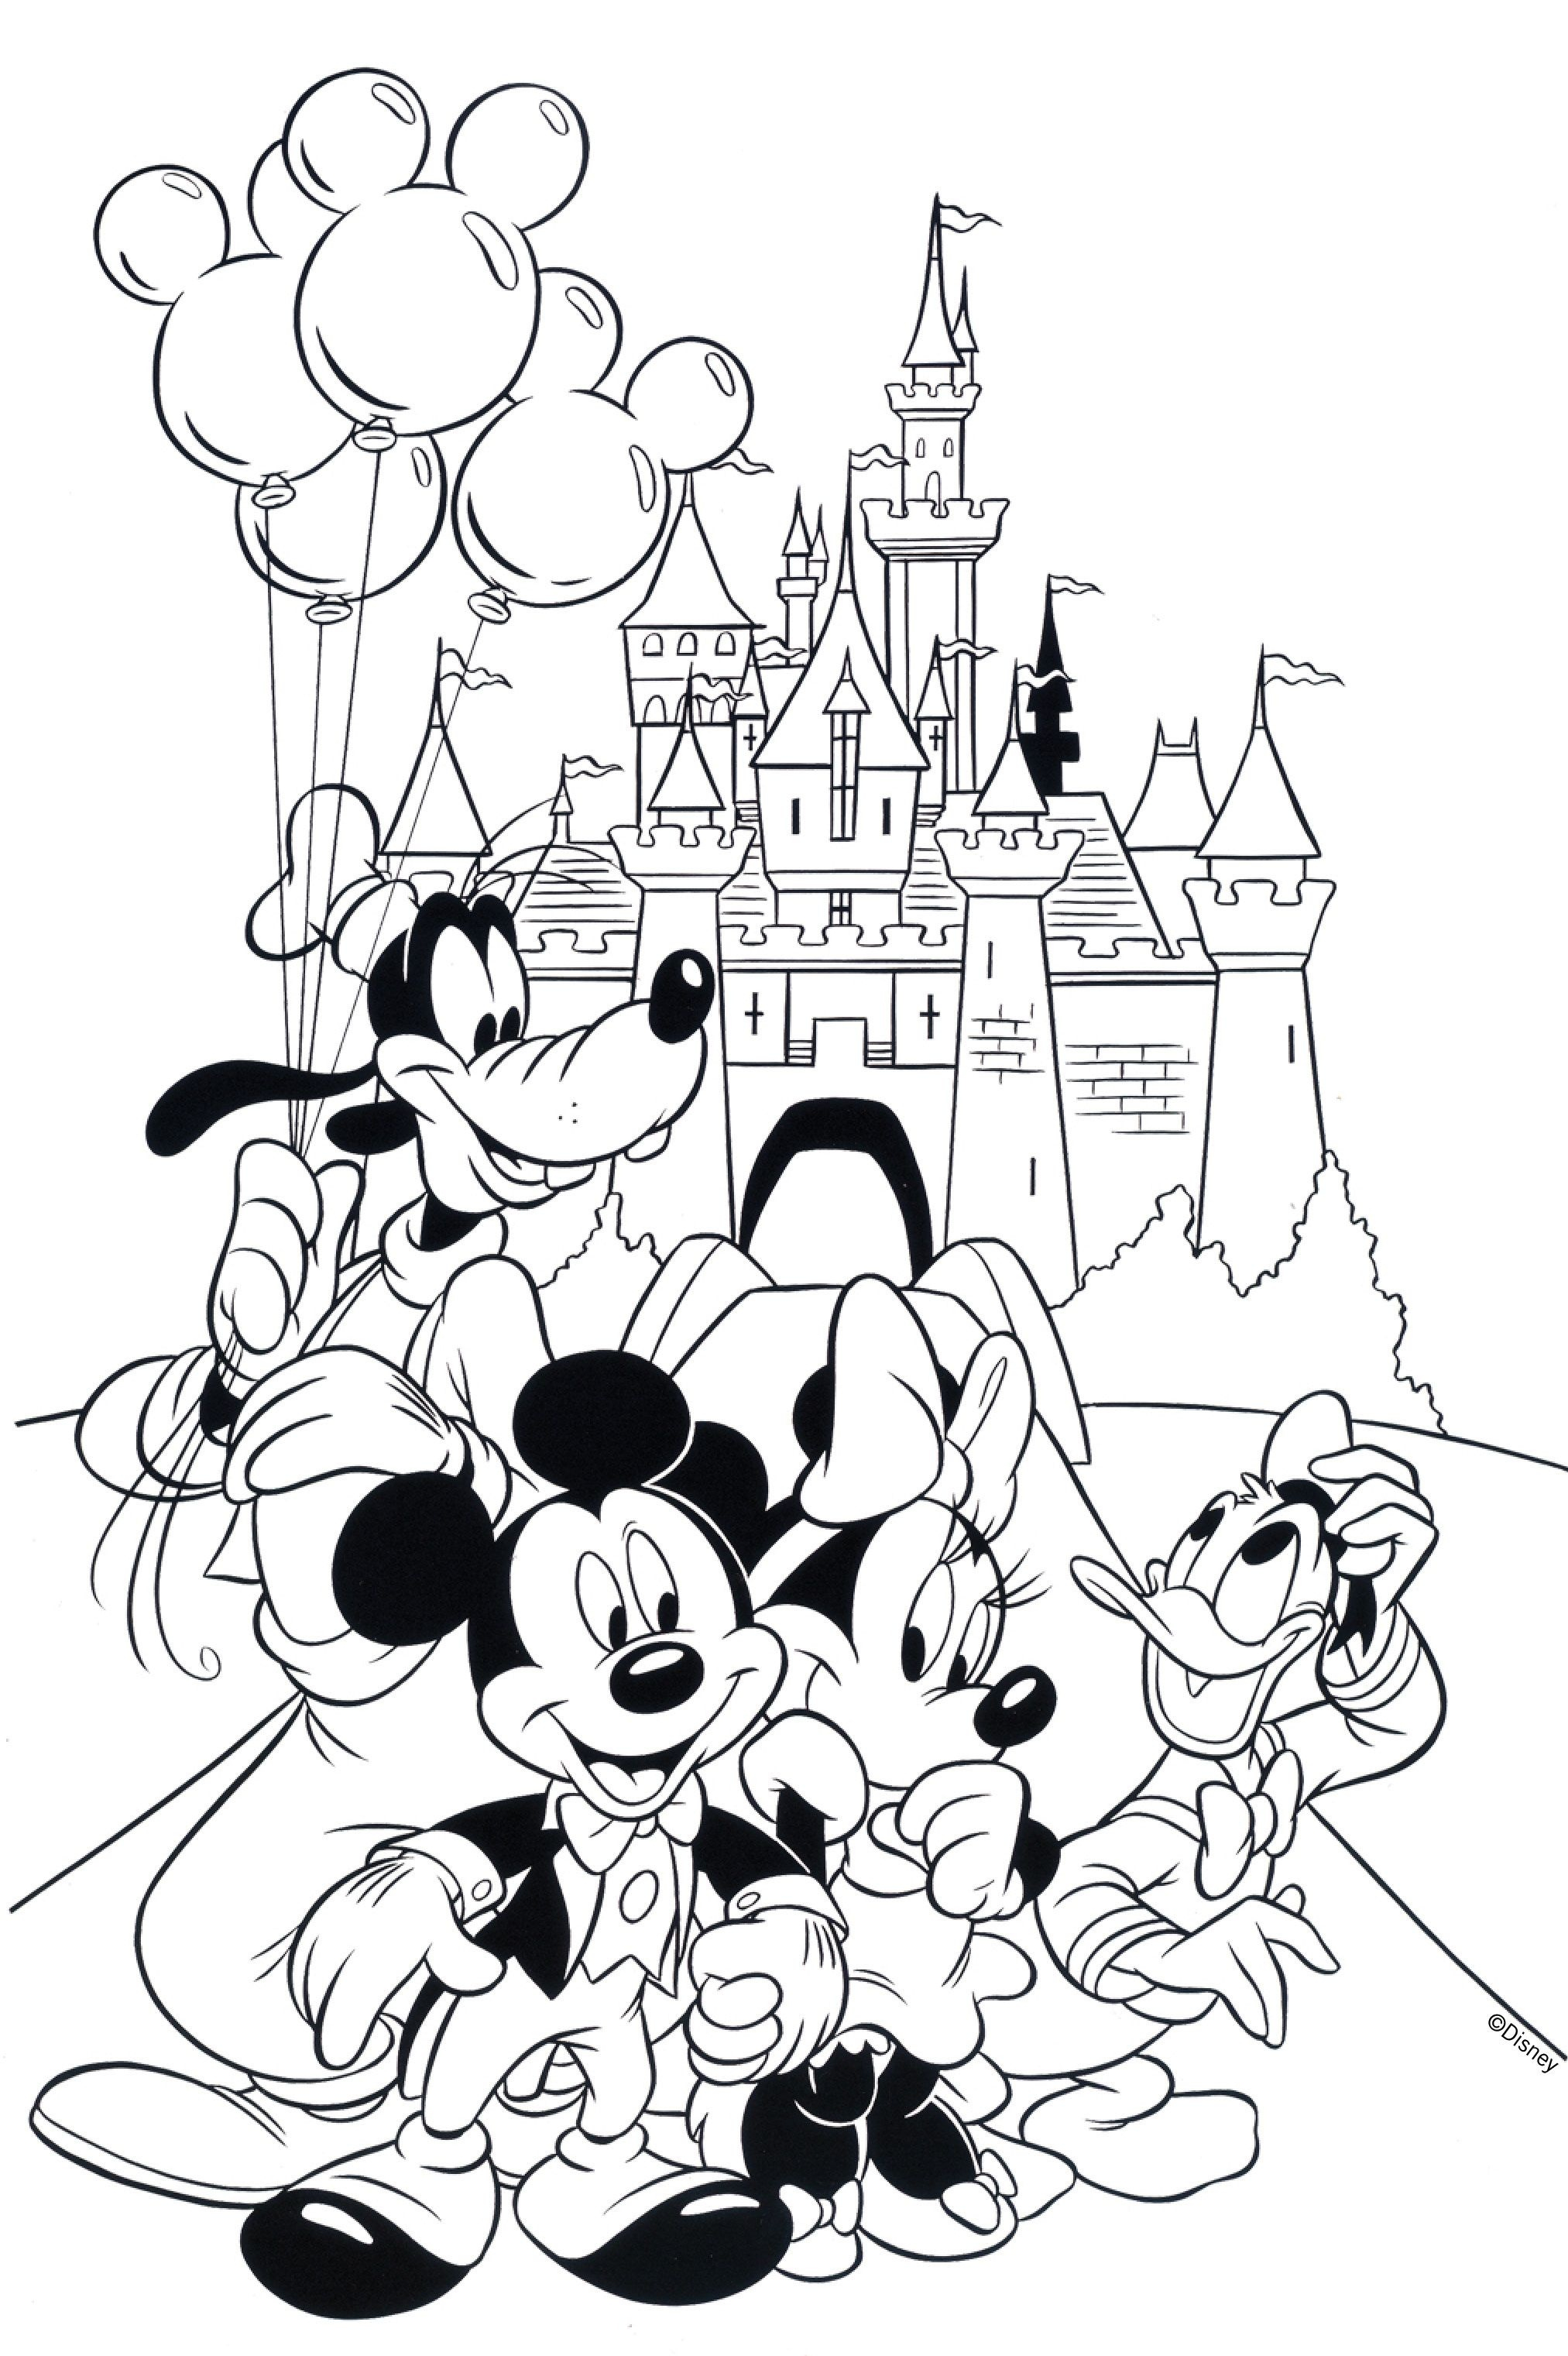 Free Disney Coloring Pages | Coloring Books | Disney Coloring Pages - Free Printable Disney Coloring Pages